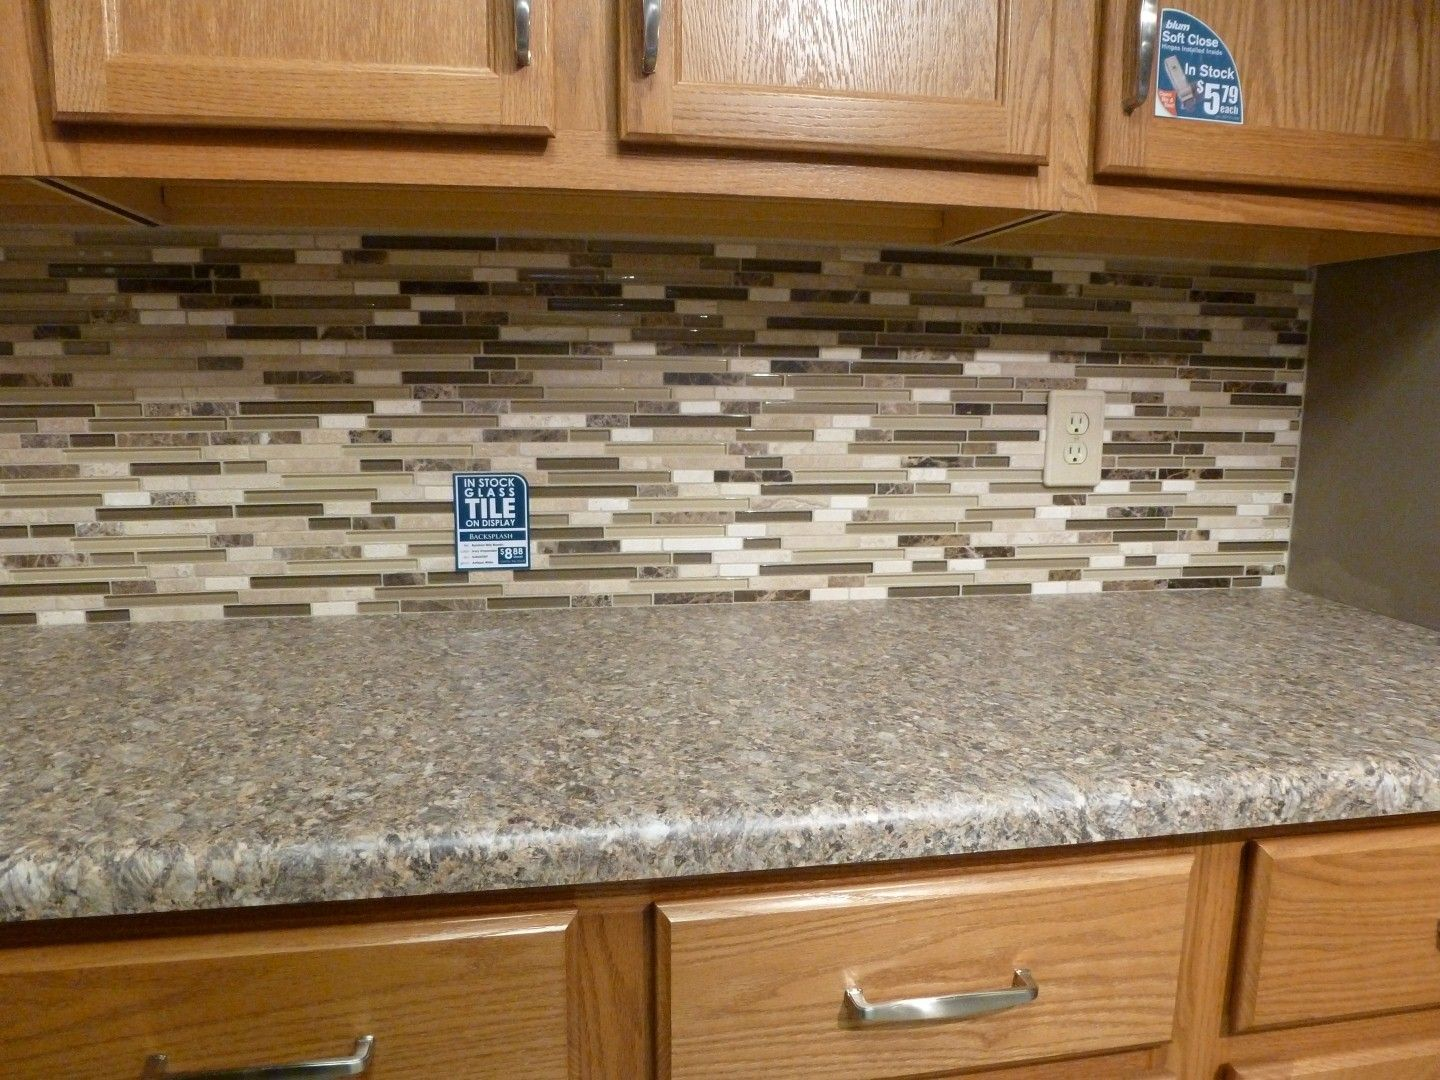 Backsplash Designs Glass mosaic kitchen tile backsplash ideas #2565 | baytownkitchen | tile